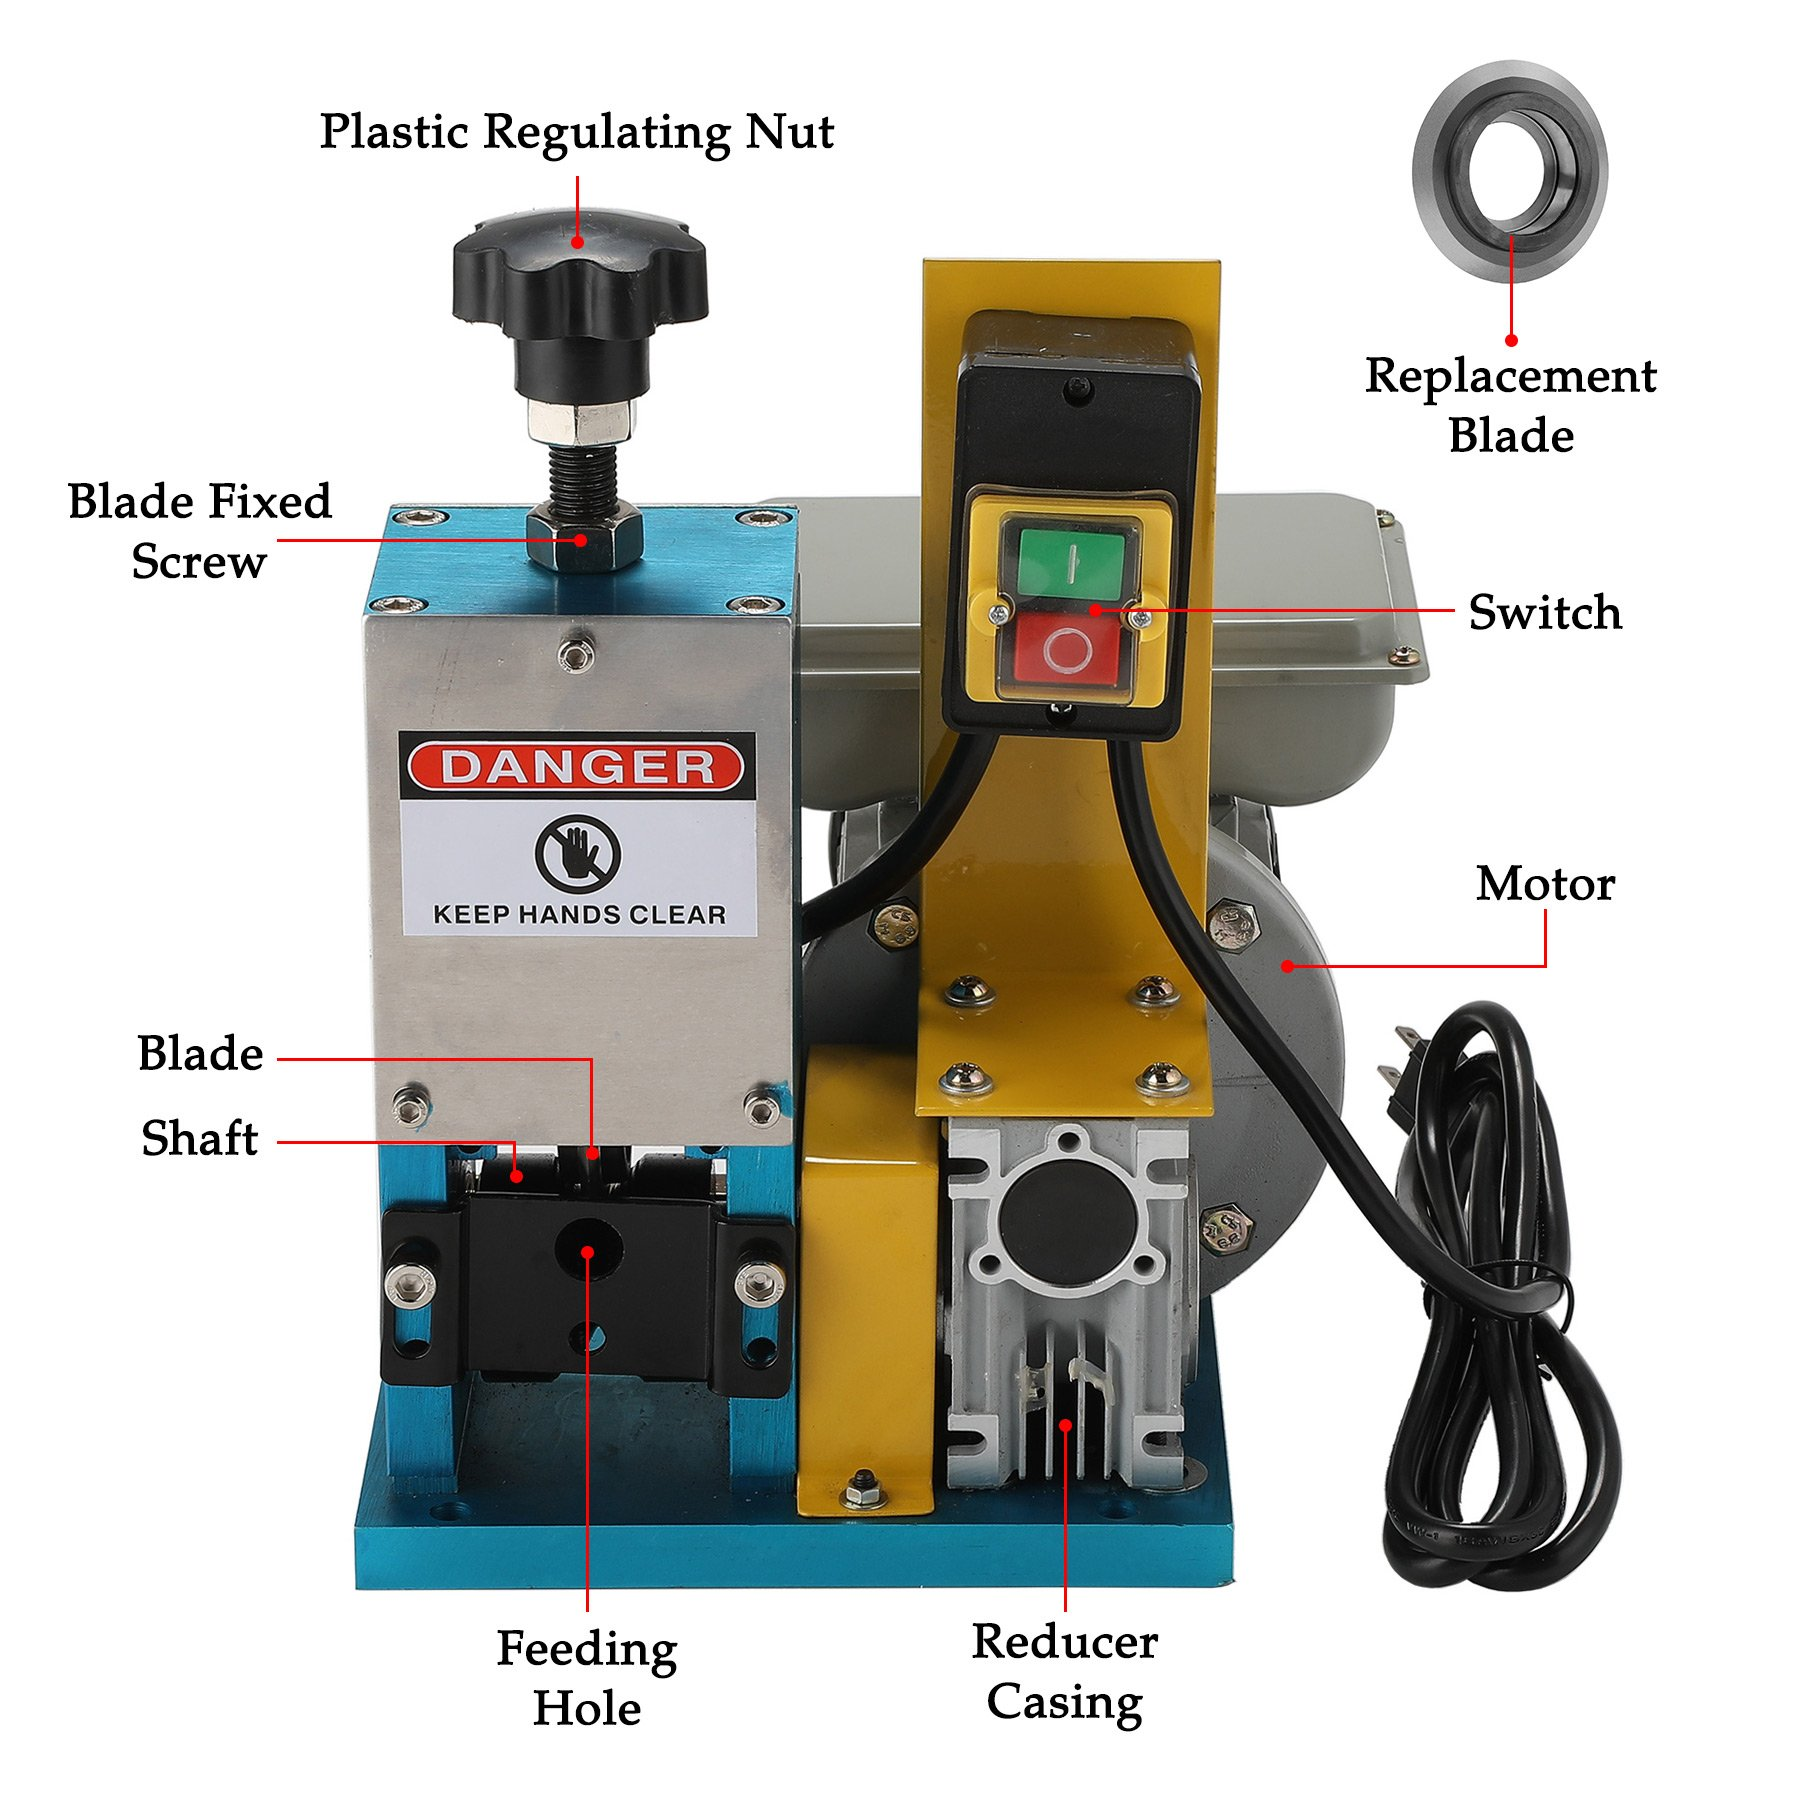 CO-Z Automatic Electric Wire Stripping Machine Portable Scrap Cable Stripper for Scrap Copper Recycling, including Extra Blade by CO-Z (Image #3)